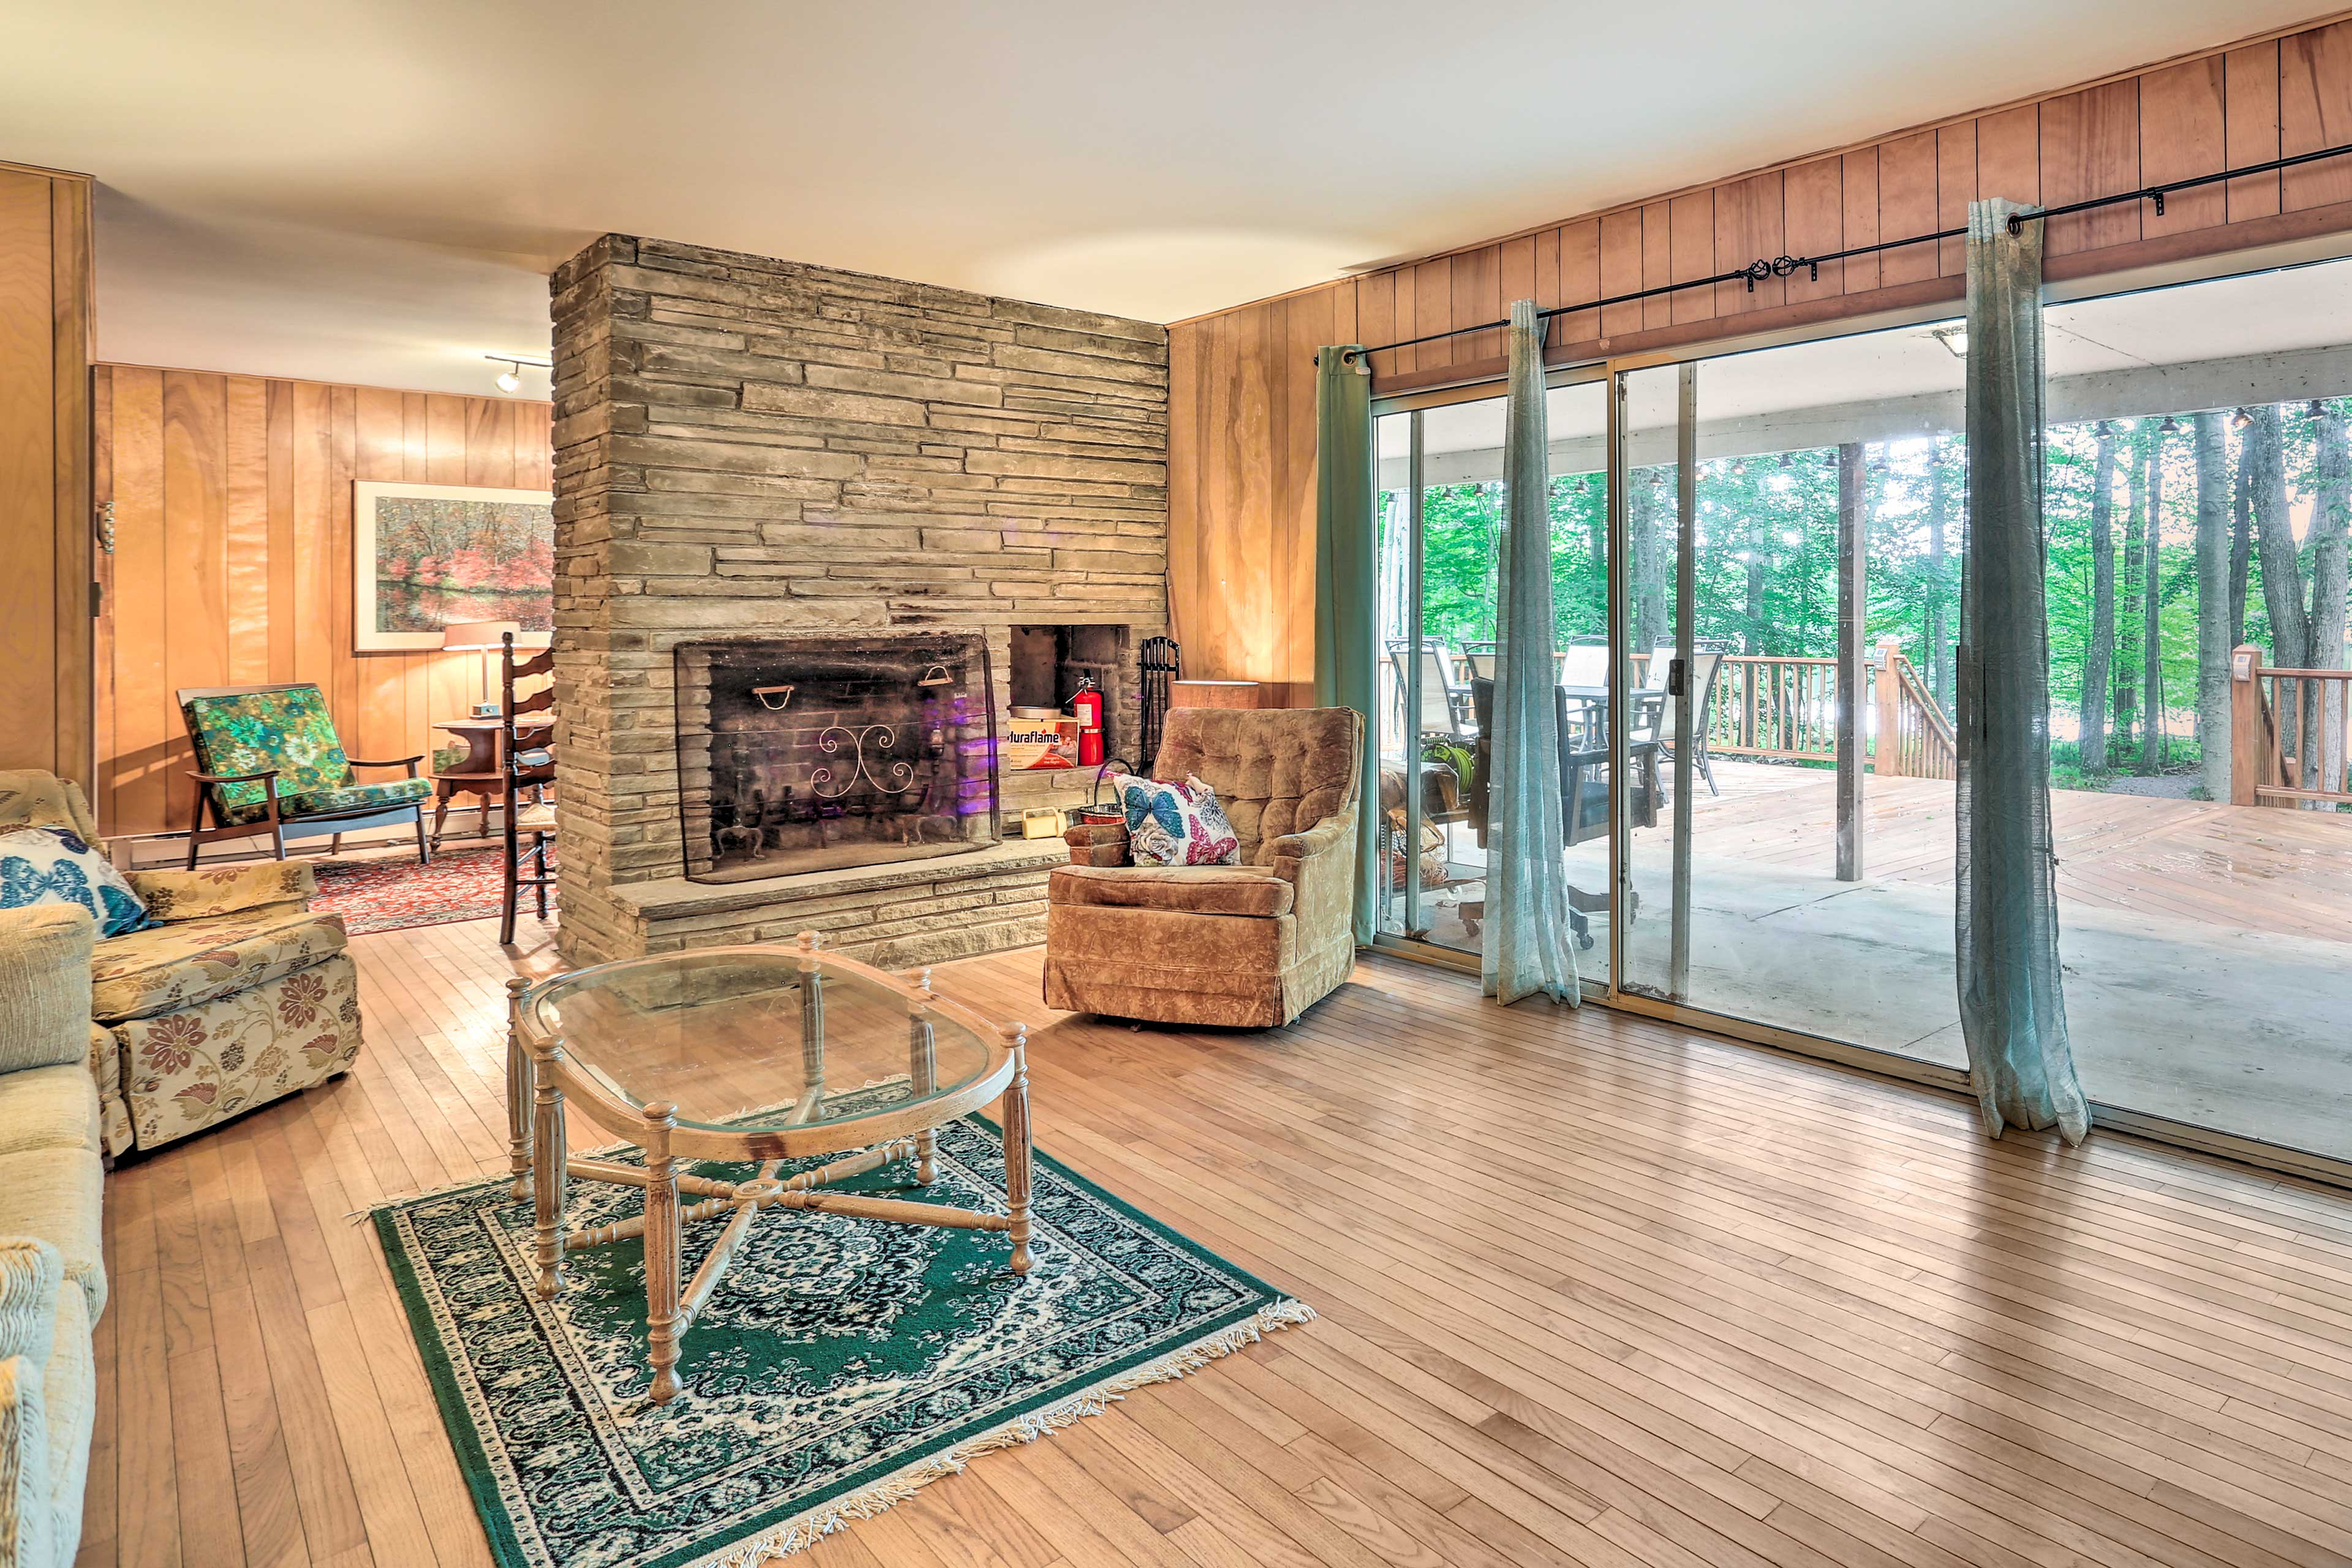 Appreciate hardwood flooring and paneling making this home a Poconos classic!